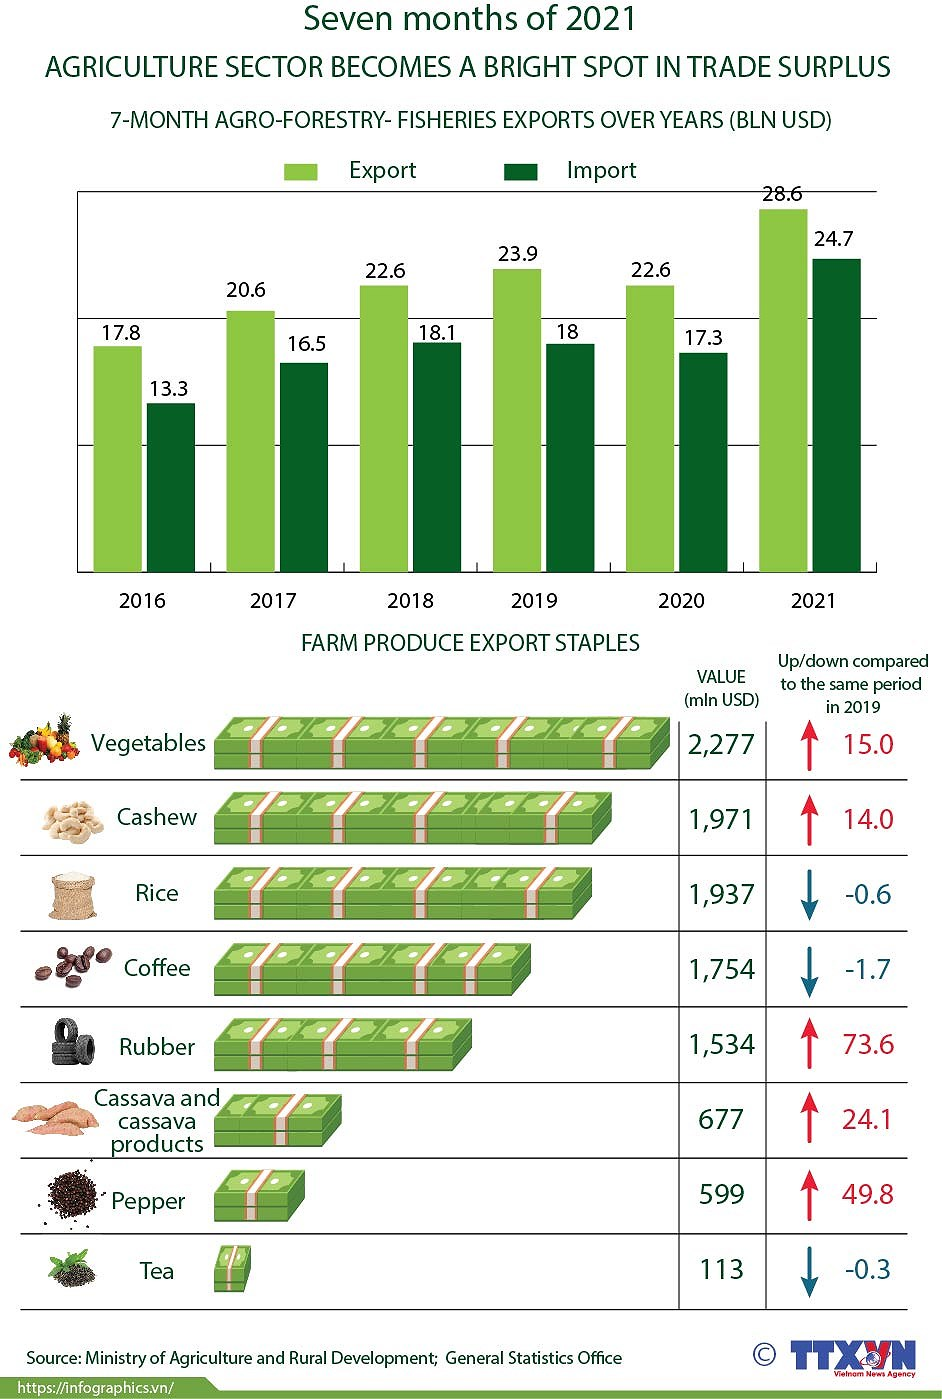 Agriculture sector becomes bright spot in trade surplus hinh anh 1